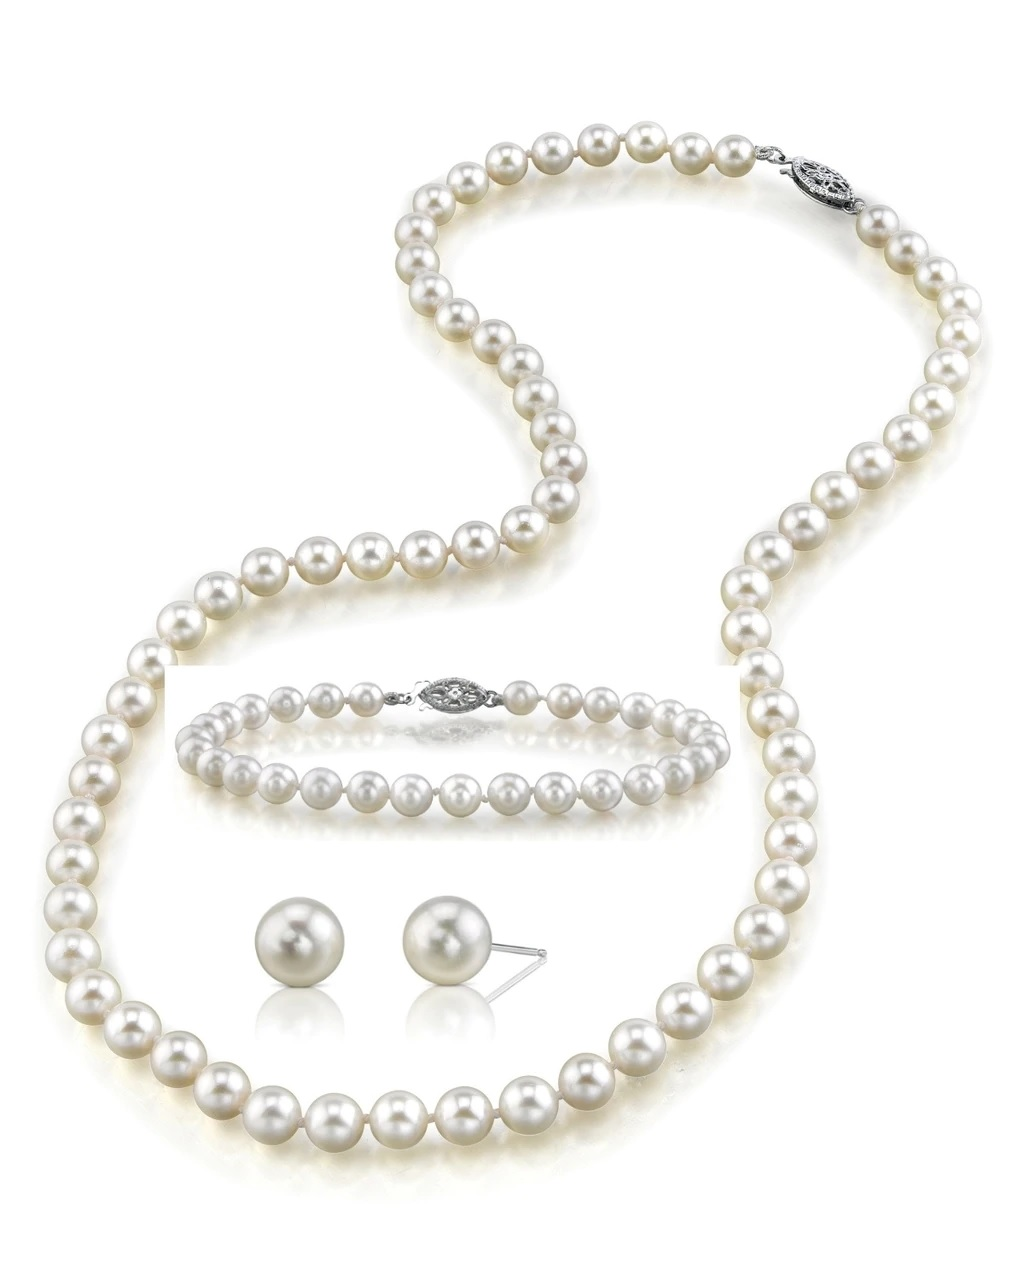 This classic necklace, bracelet and earring set features 7.0-7.5mm Japanese Akoya pearls